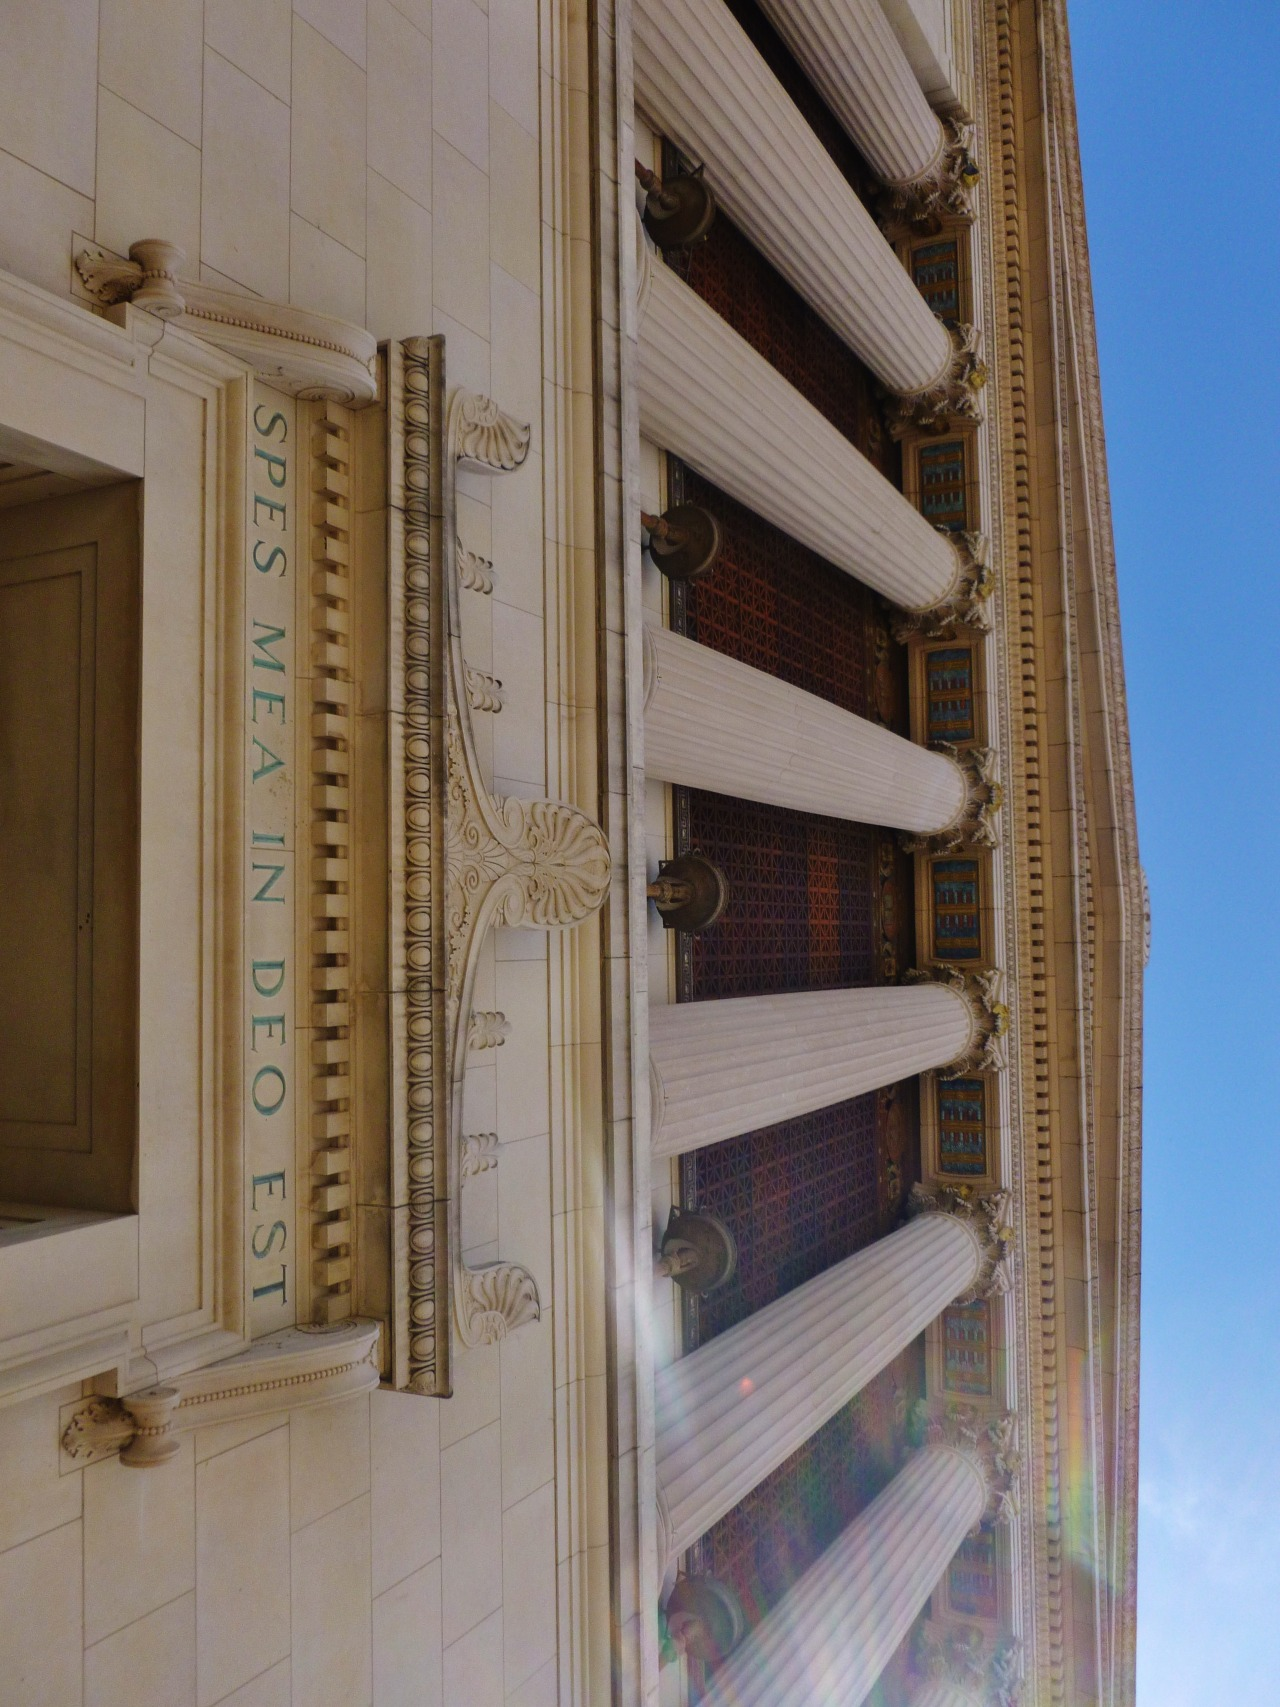 timothymcvainlives:  The Scottish Rite Auditorium. San Antonio, Texas.